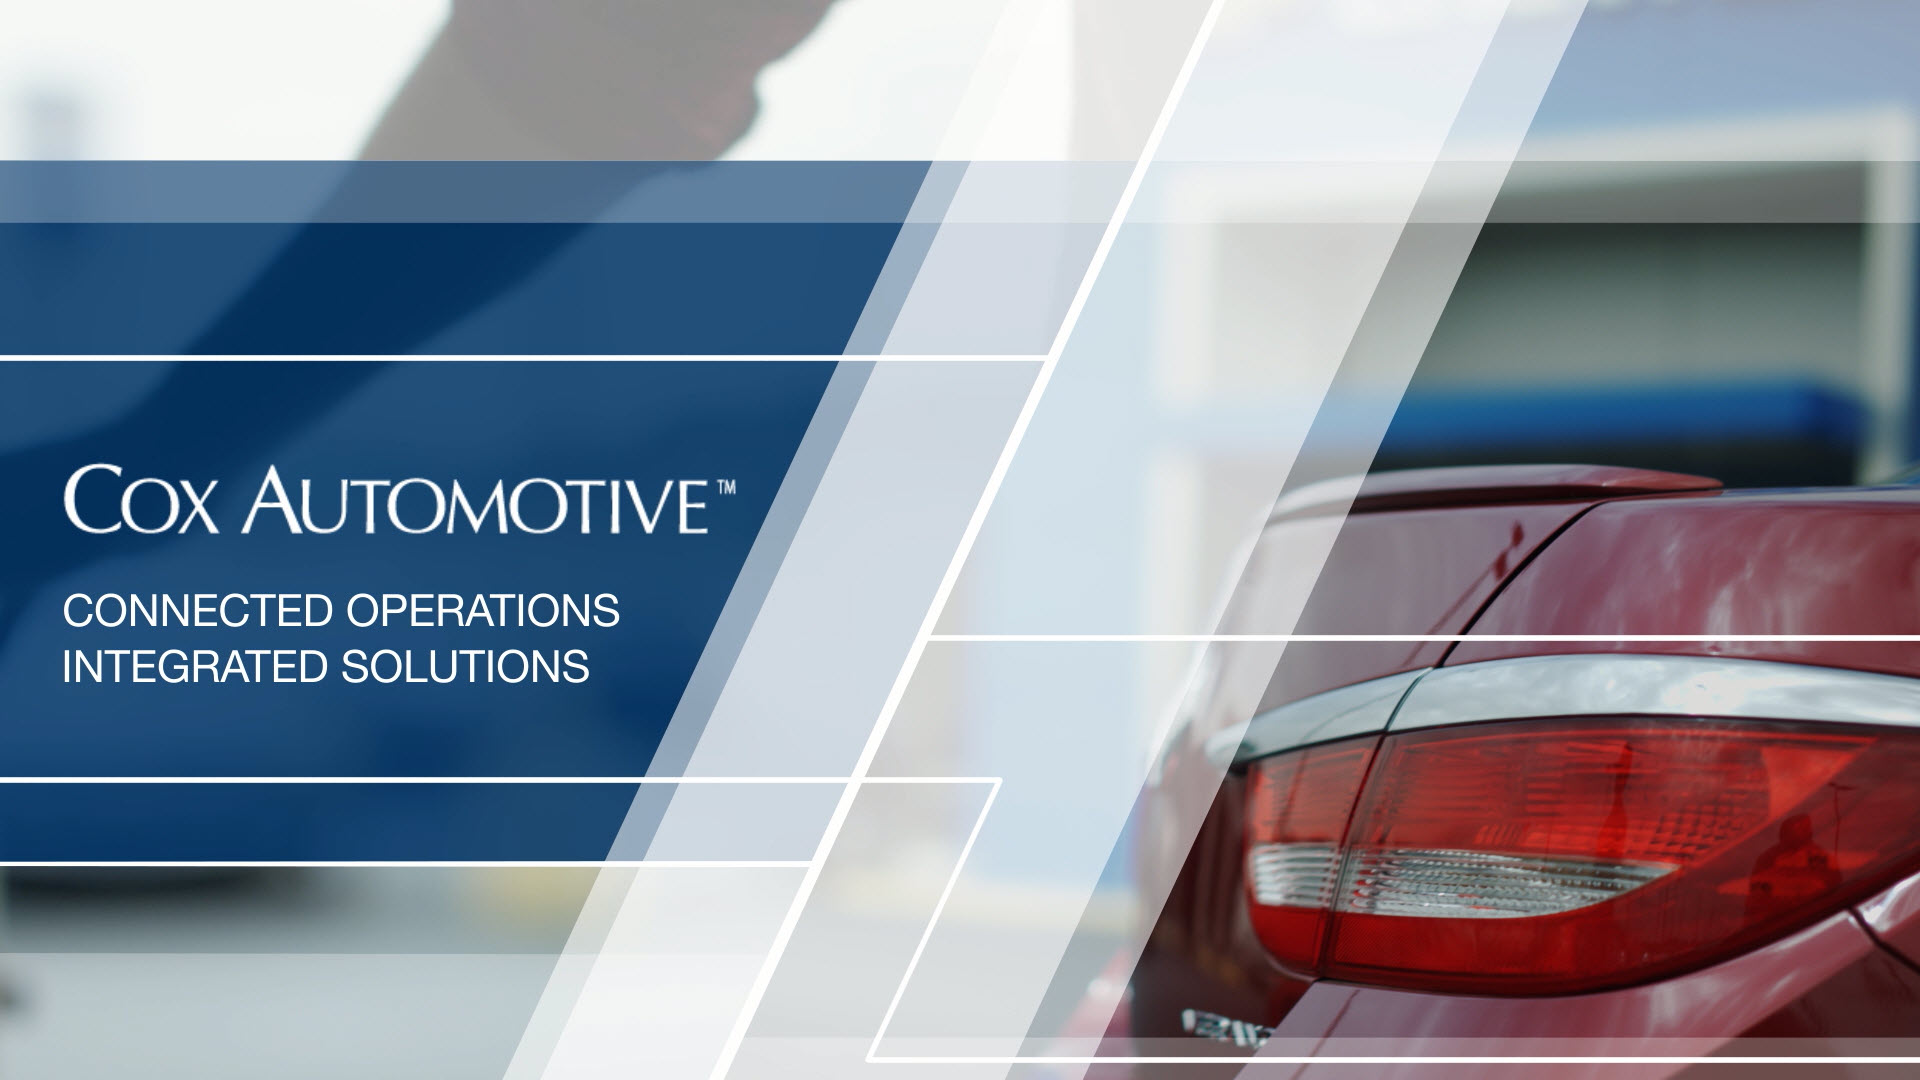 Cox automotive connected operations integrated solutions